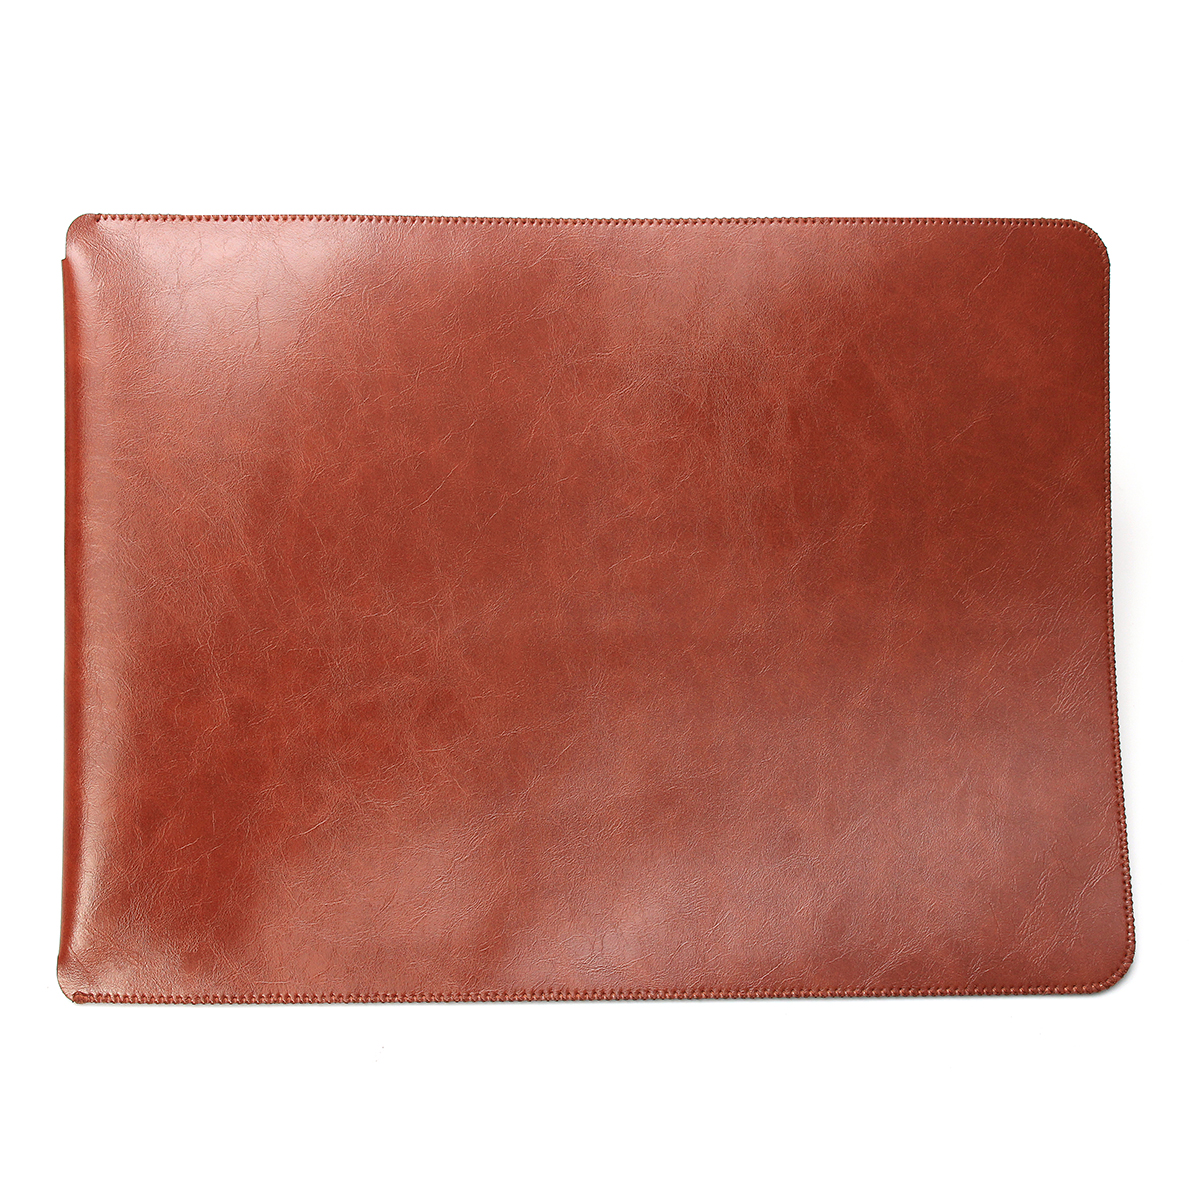 PU Leather Laptop Sleeve Bag Case Pouch Cover for MacBook Air/ Pro 13